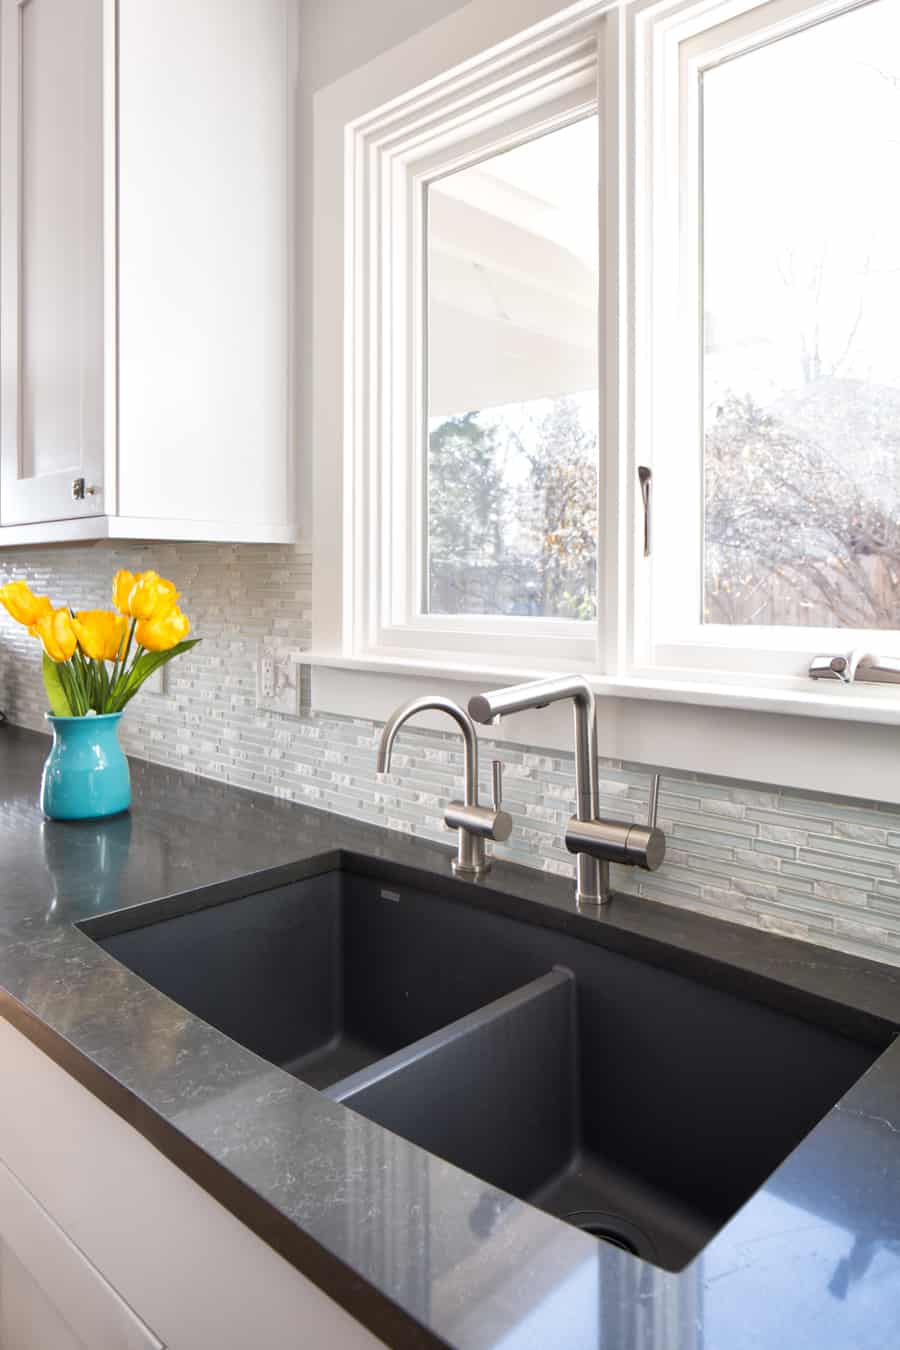 Melton Design Build- Kitchen Sink